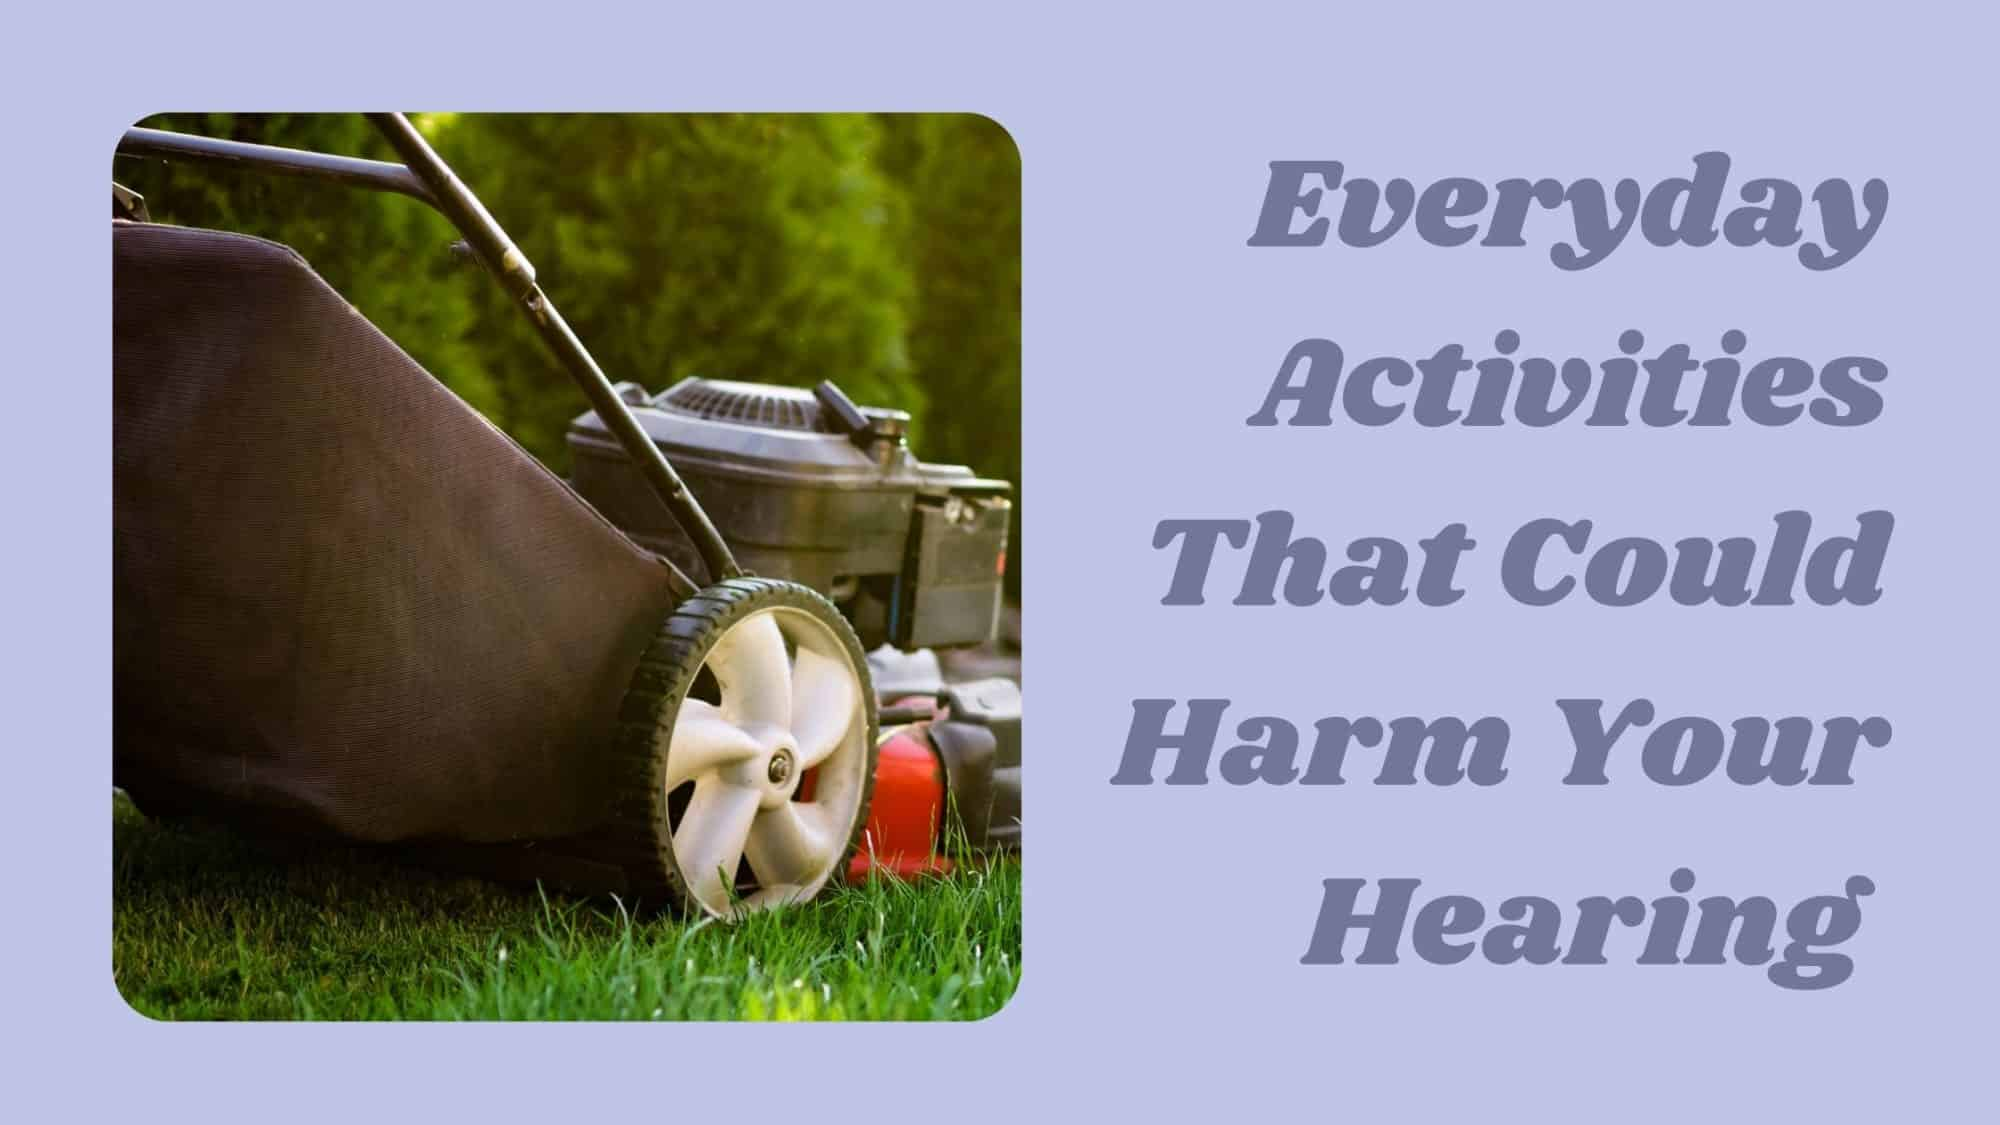 Everyday Activities That Could Harm Your Hearing